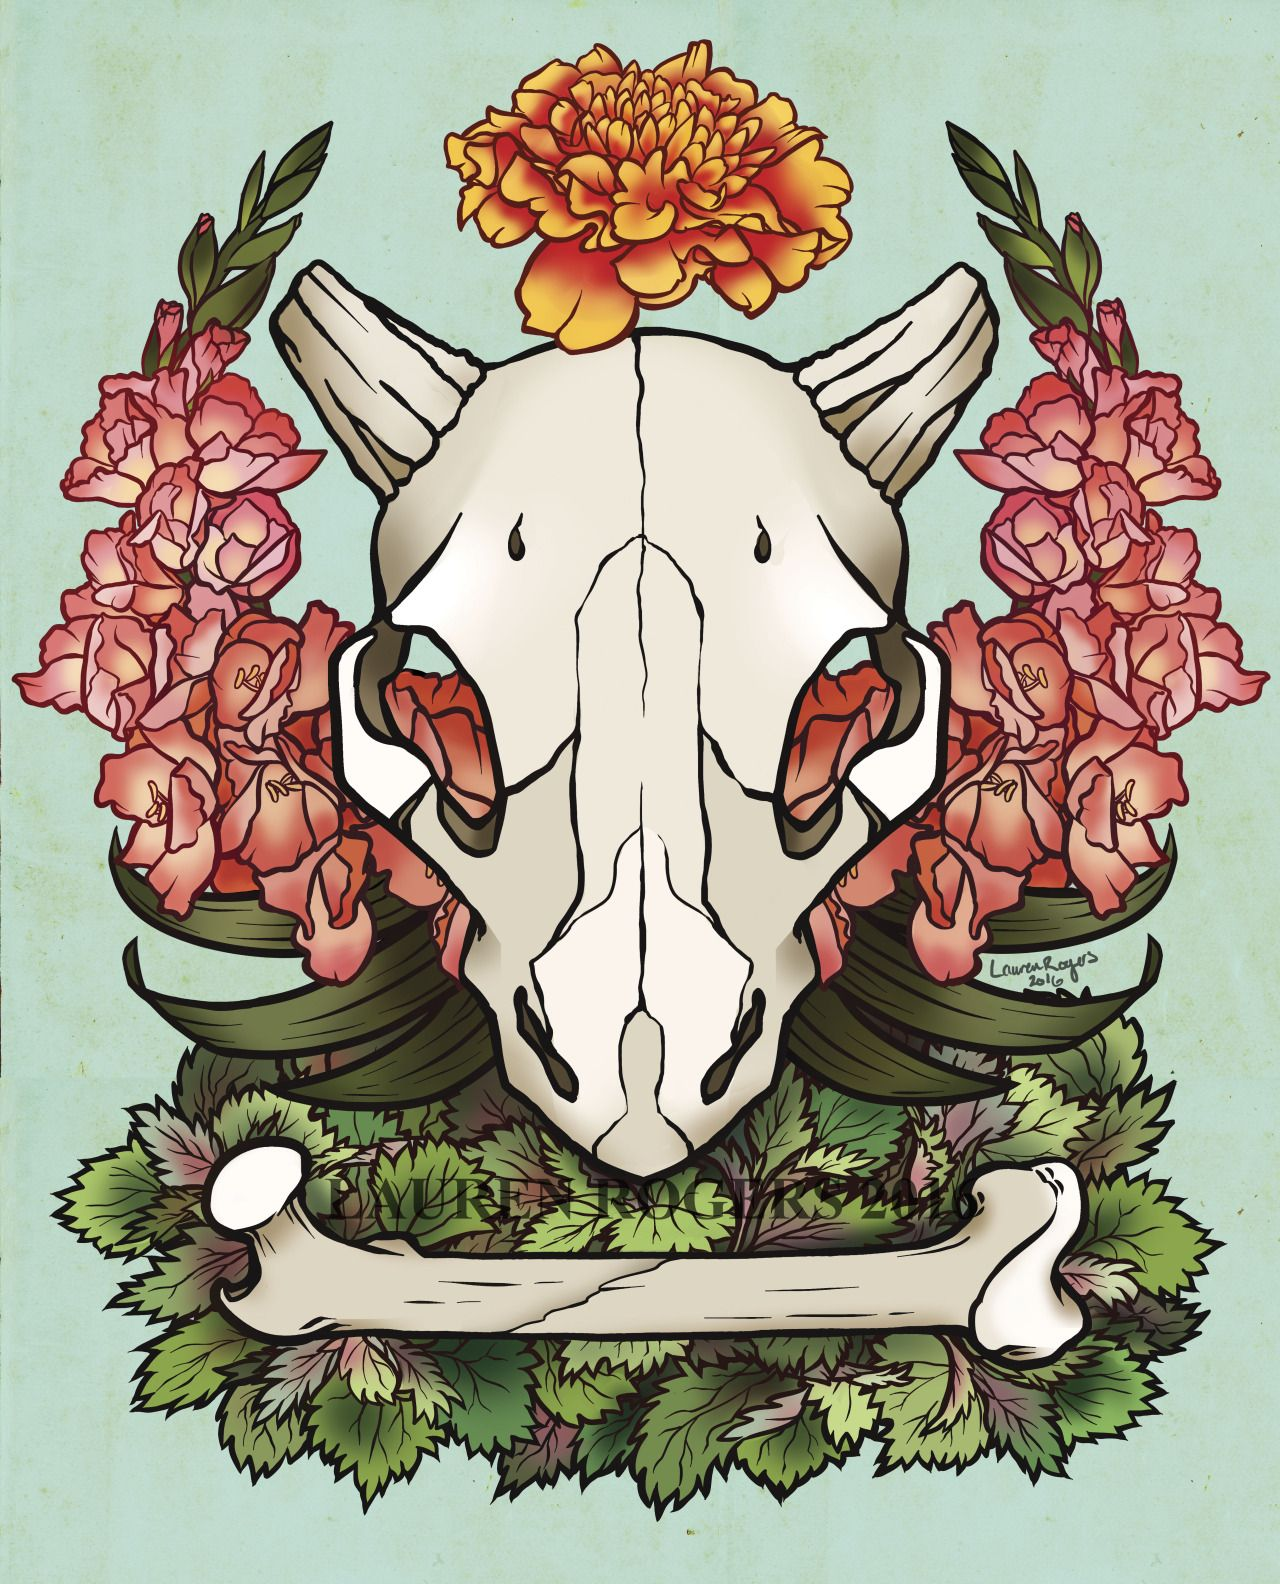 Cubone! one of my all time favs. From what I understand Marigolds are symbolic of grief but also the sun, rising every day. Gladiolus is for determination and strength, and stinging nettle can offer...